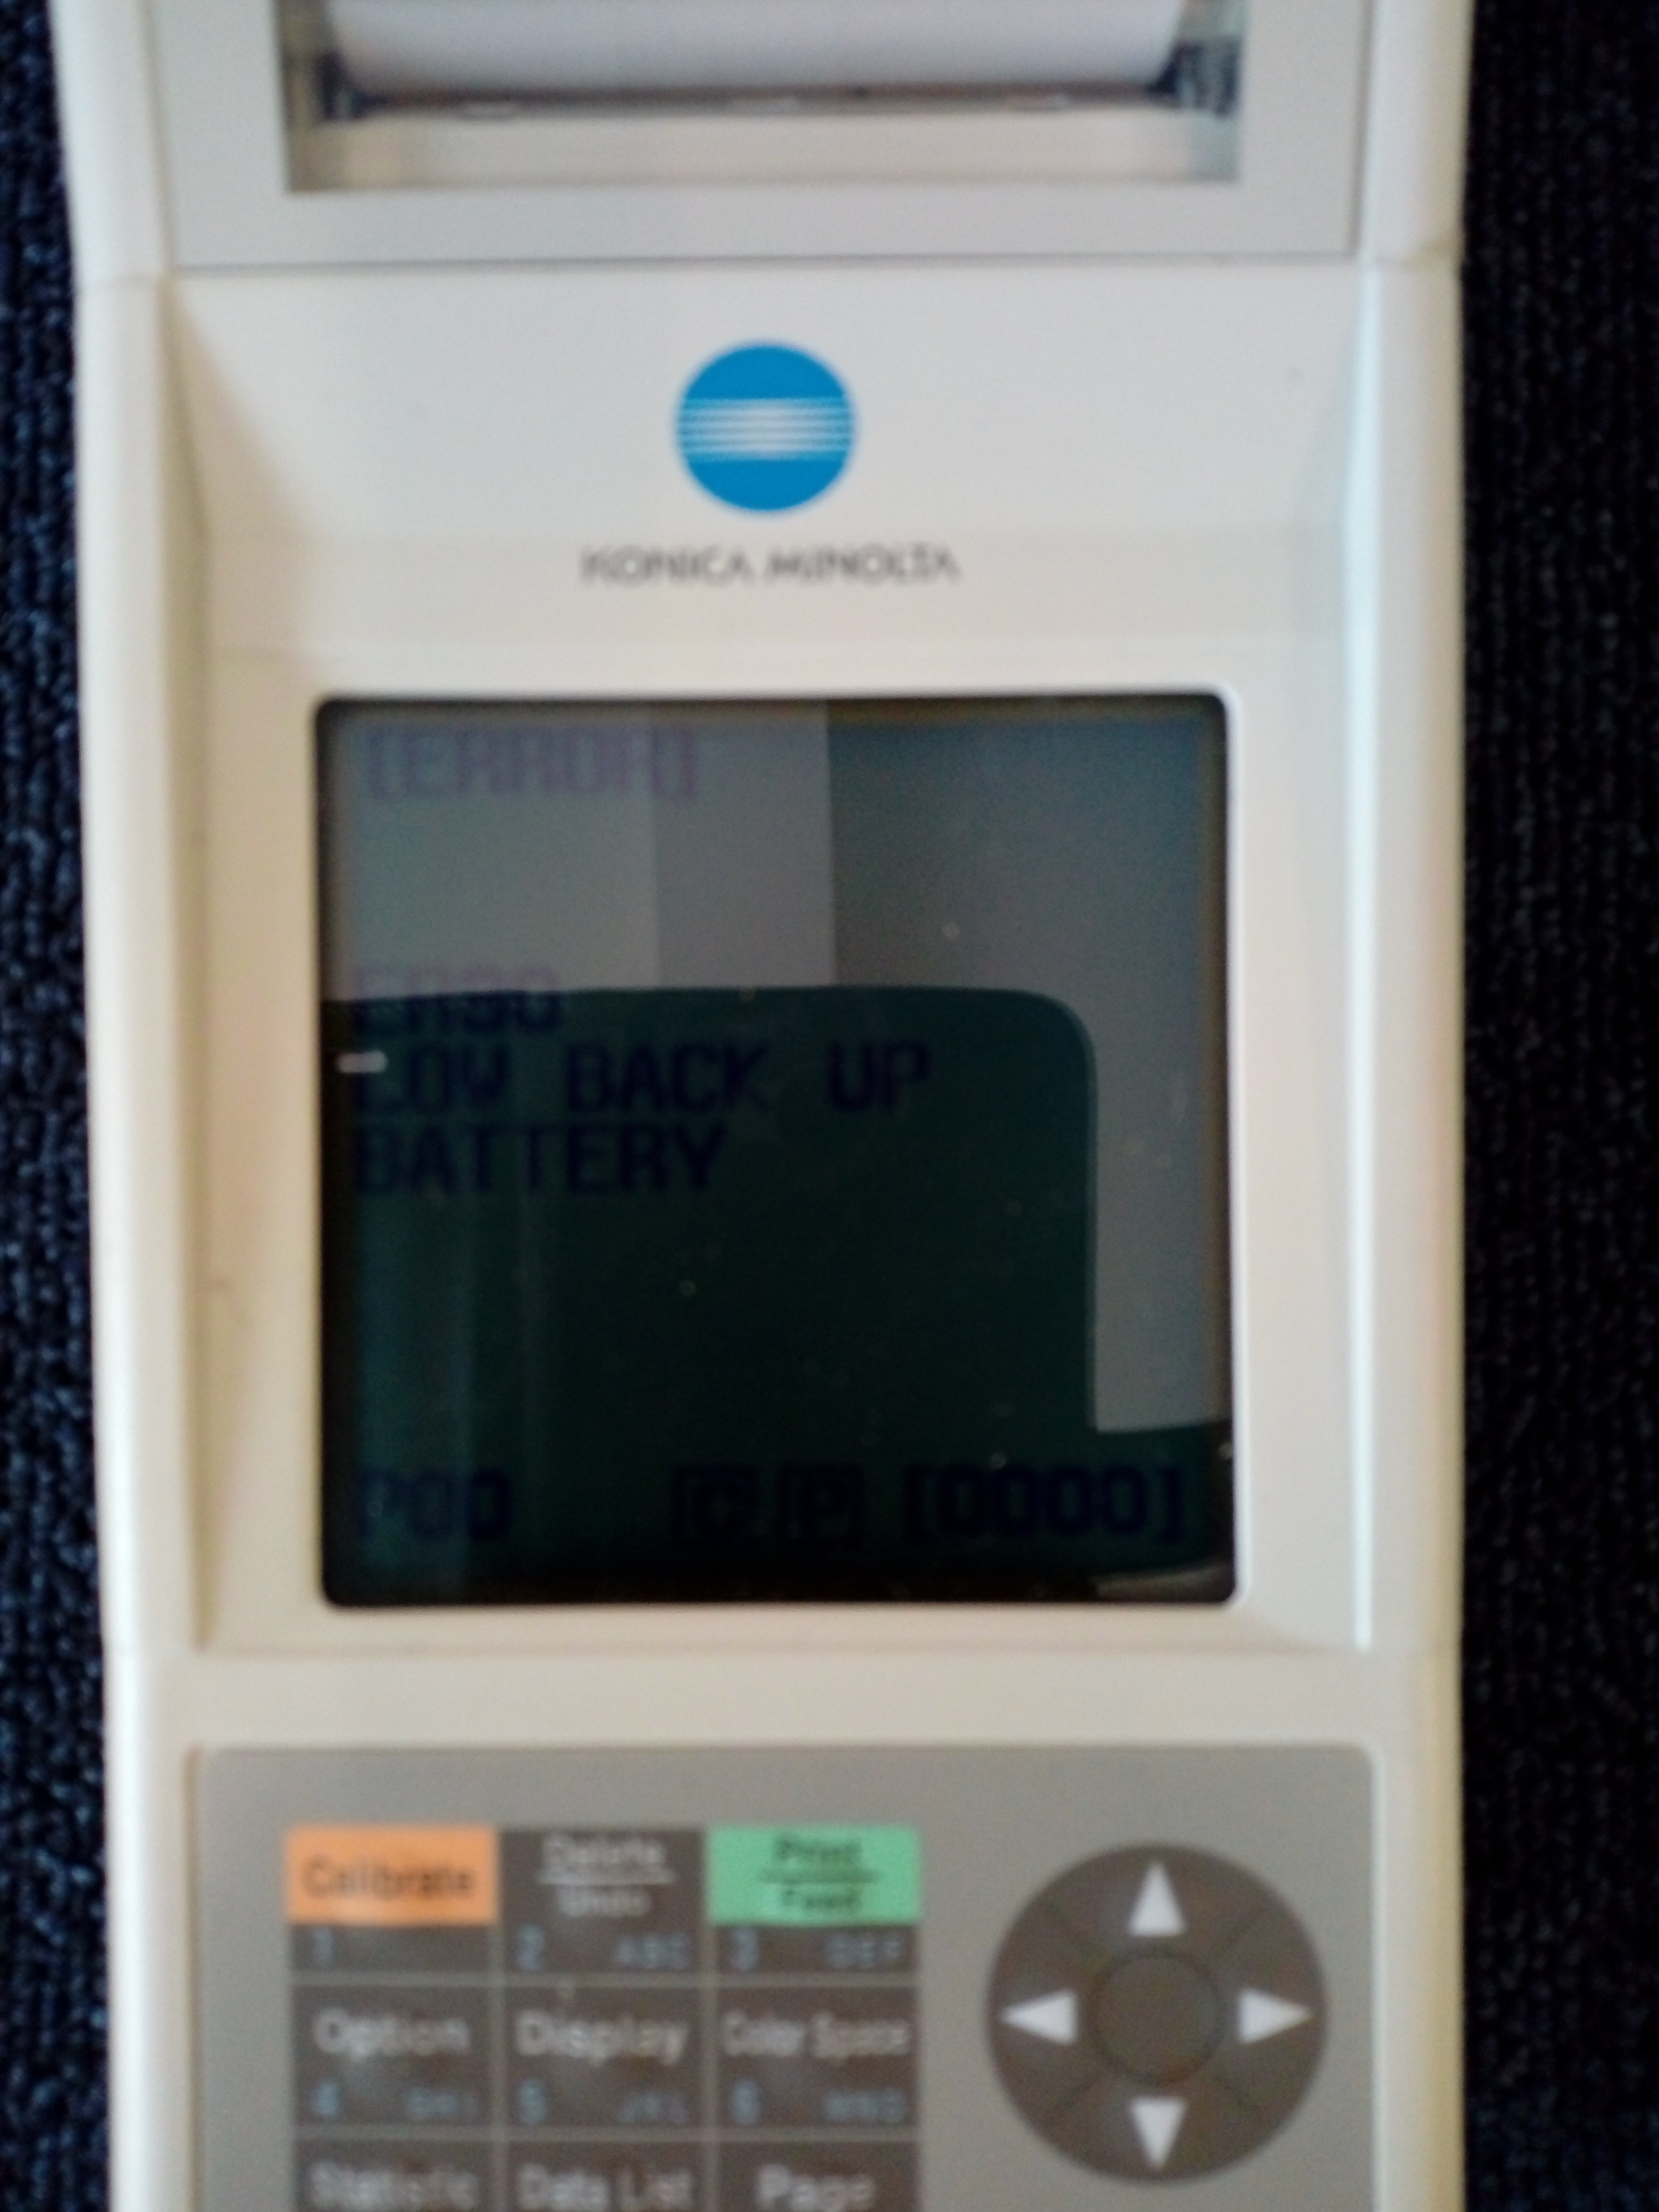 Konica Data Processor DP-400 with Chroma Meter CR-400 with Calibration Plate